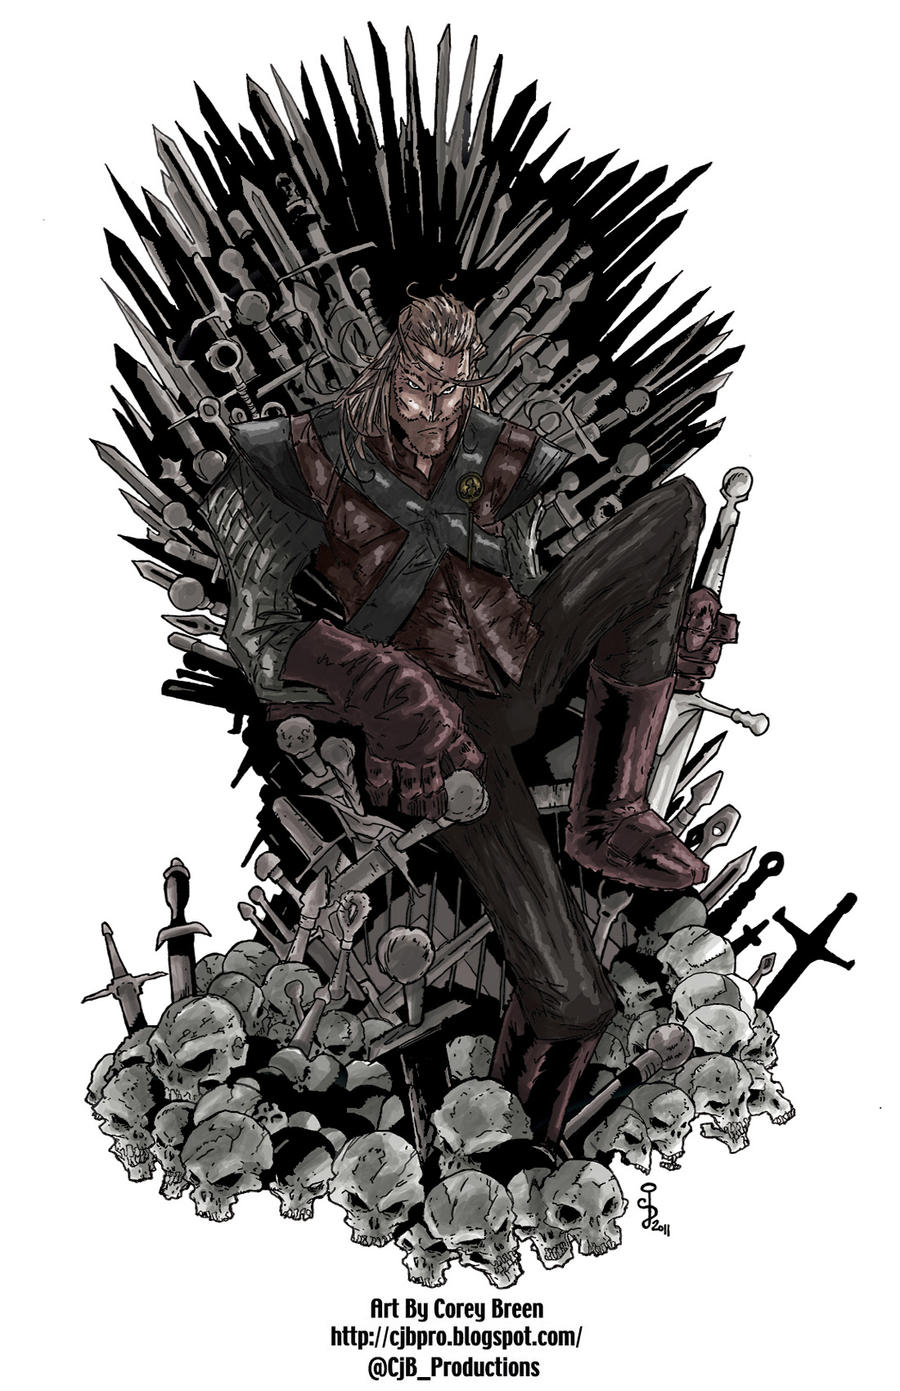 Eddard of House Stark